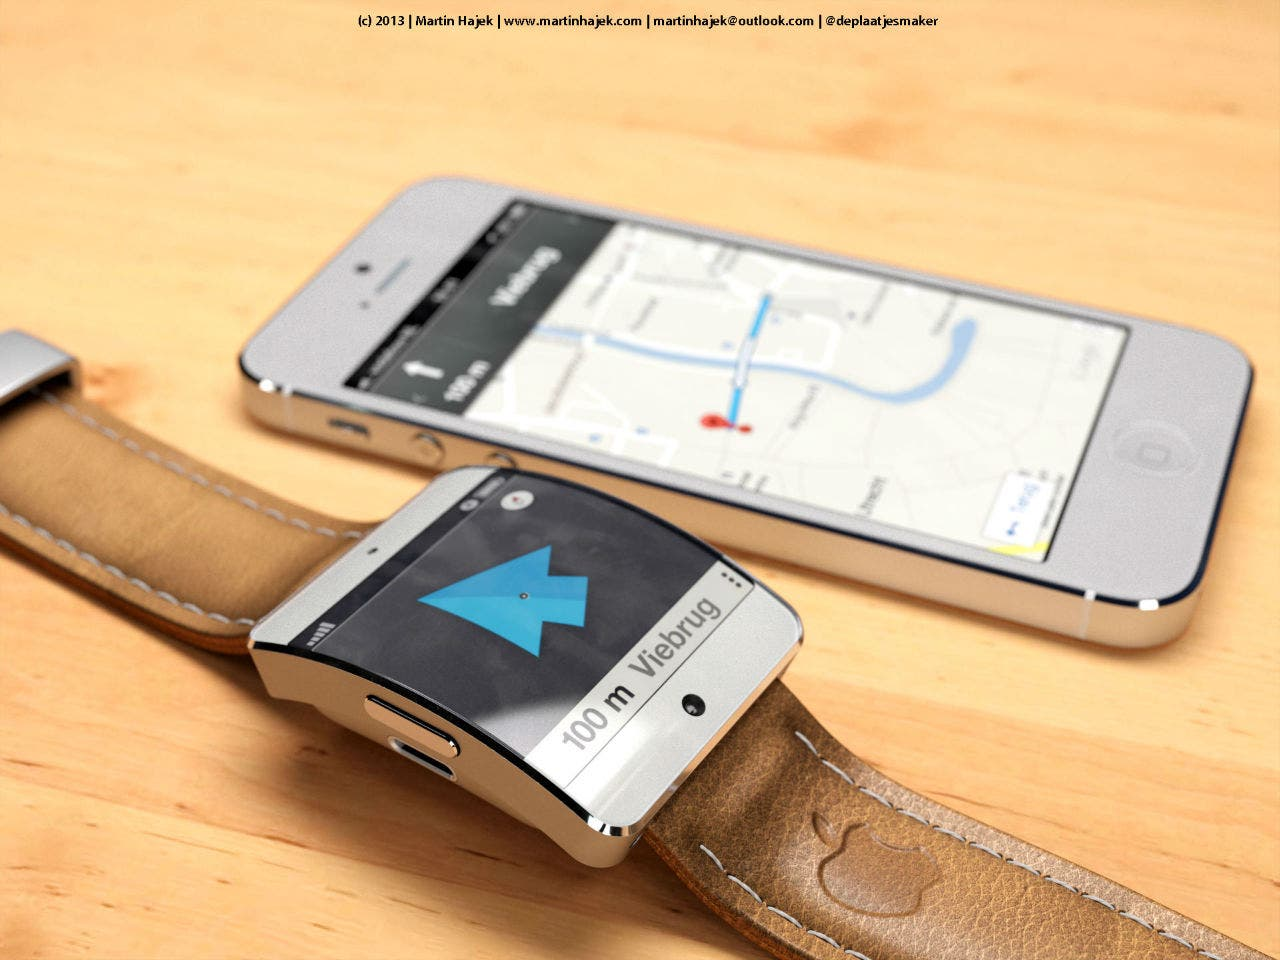 iWatch Maps